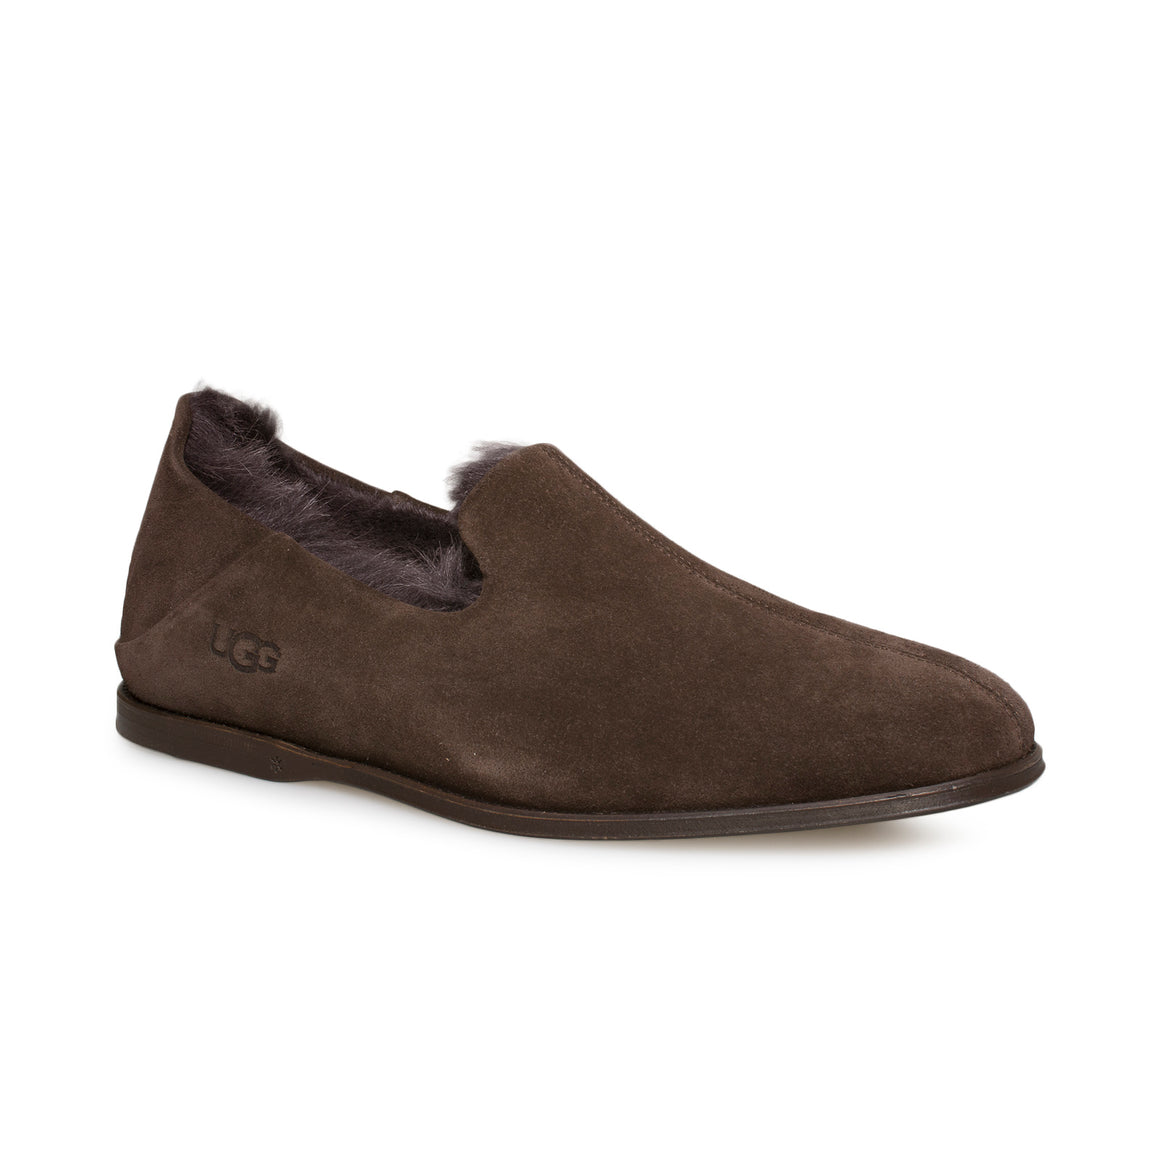 UGG Chateau Stout Shoes - Men's